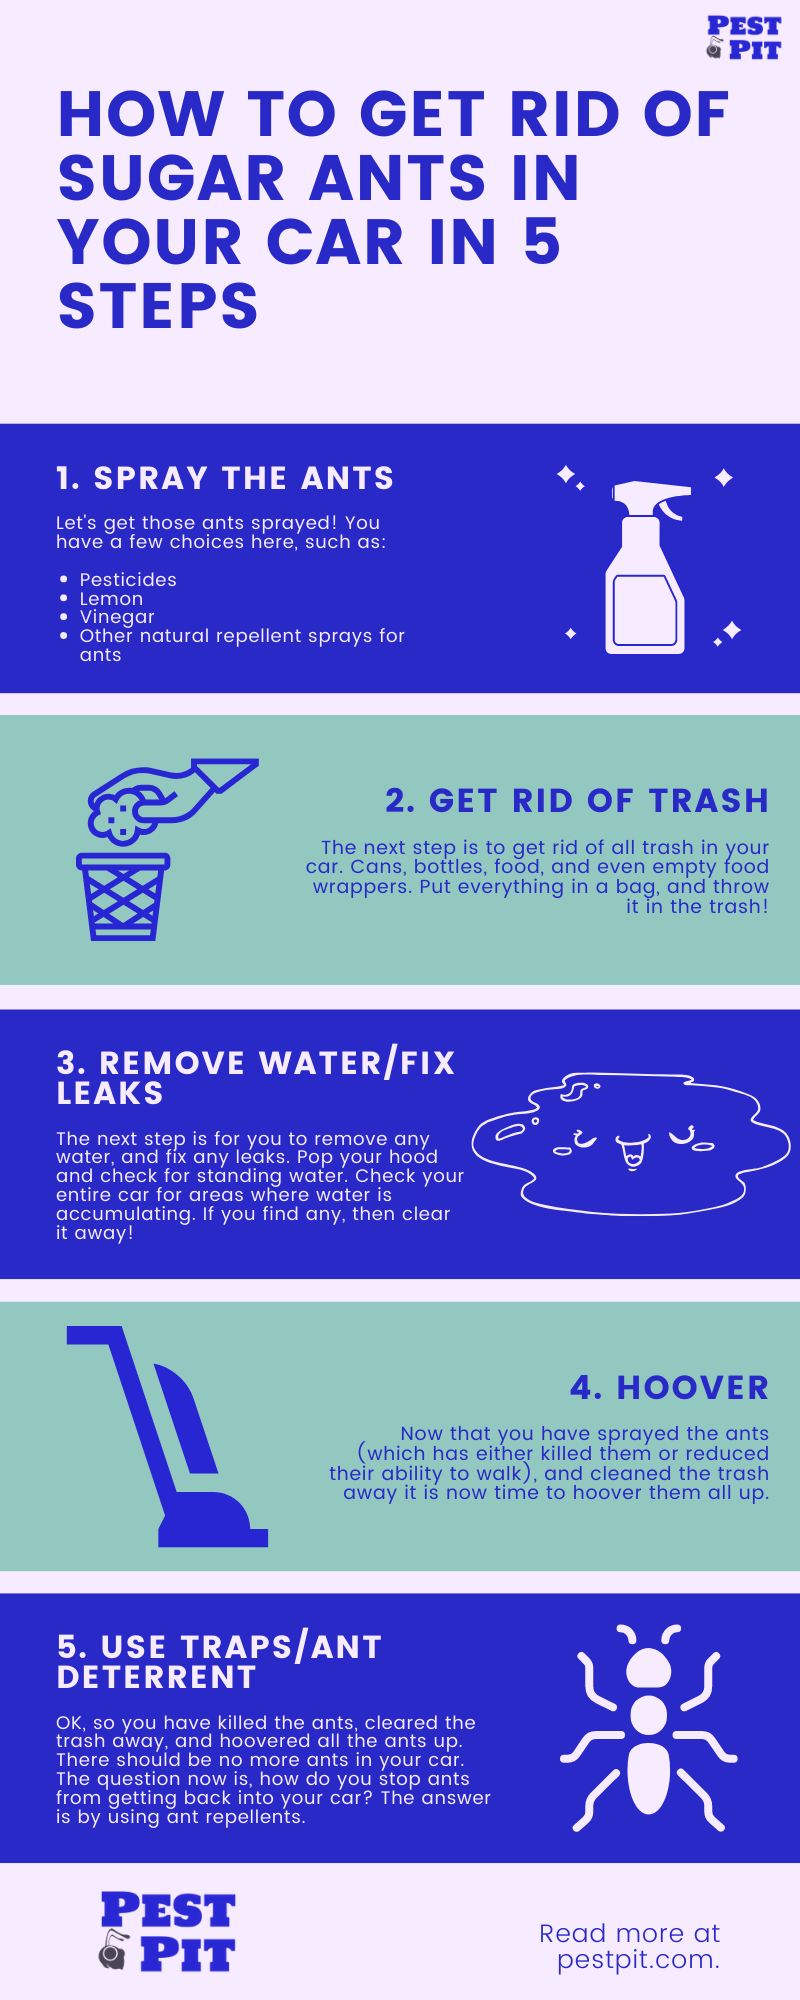 How To Get Rid Of Sugar Ants In Your Car Infographic